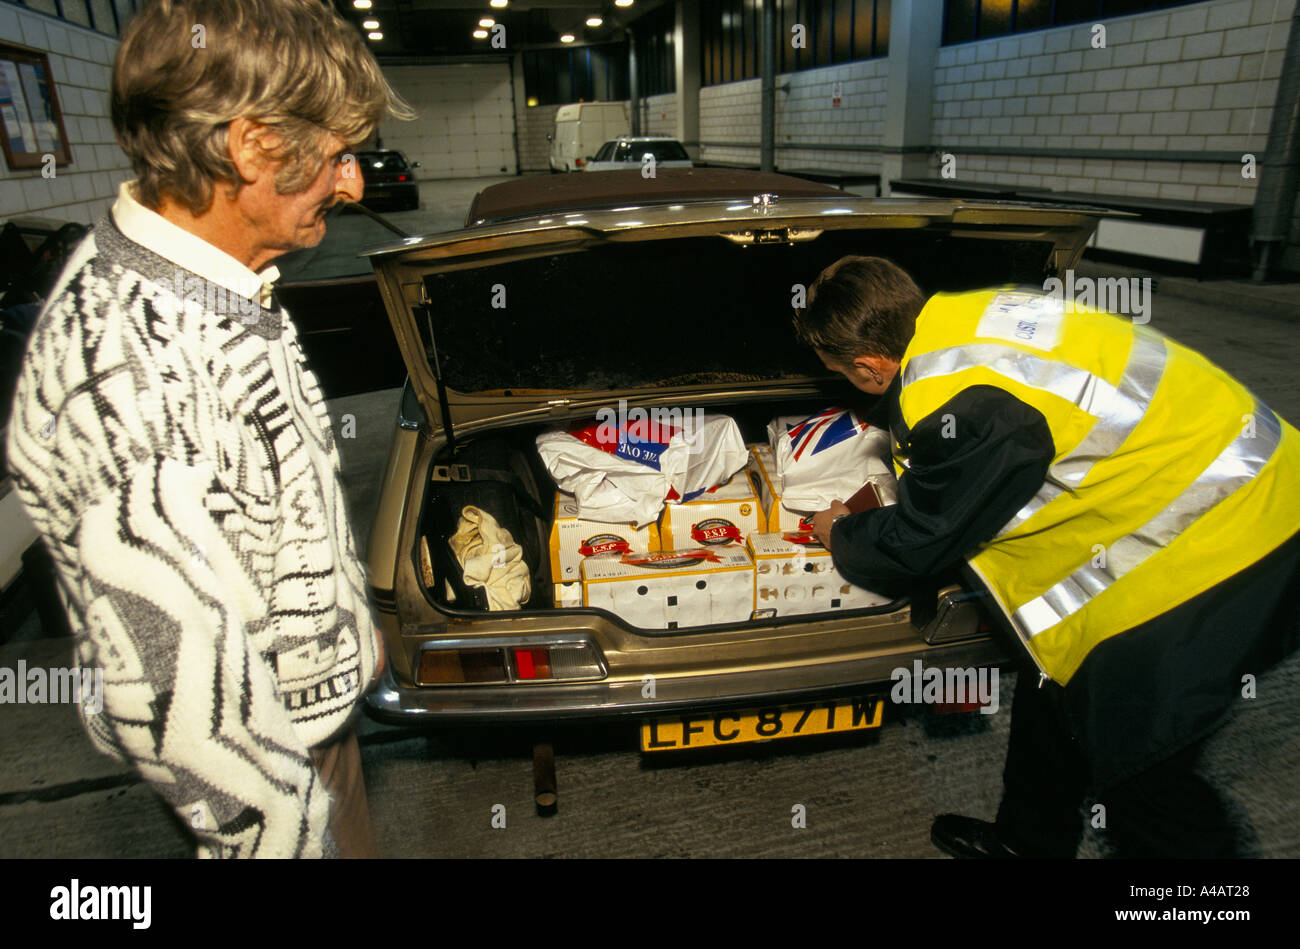 A CUSTOMS & EXCISE OFFICER AT  DOVER PORT ON ENGLAND'S SOUTH COAST CATALOGUES GOODS BEING CONFISCATED FROM A SMUGGLER. - Stock Image